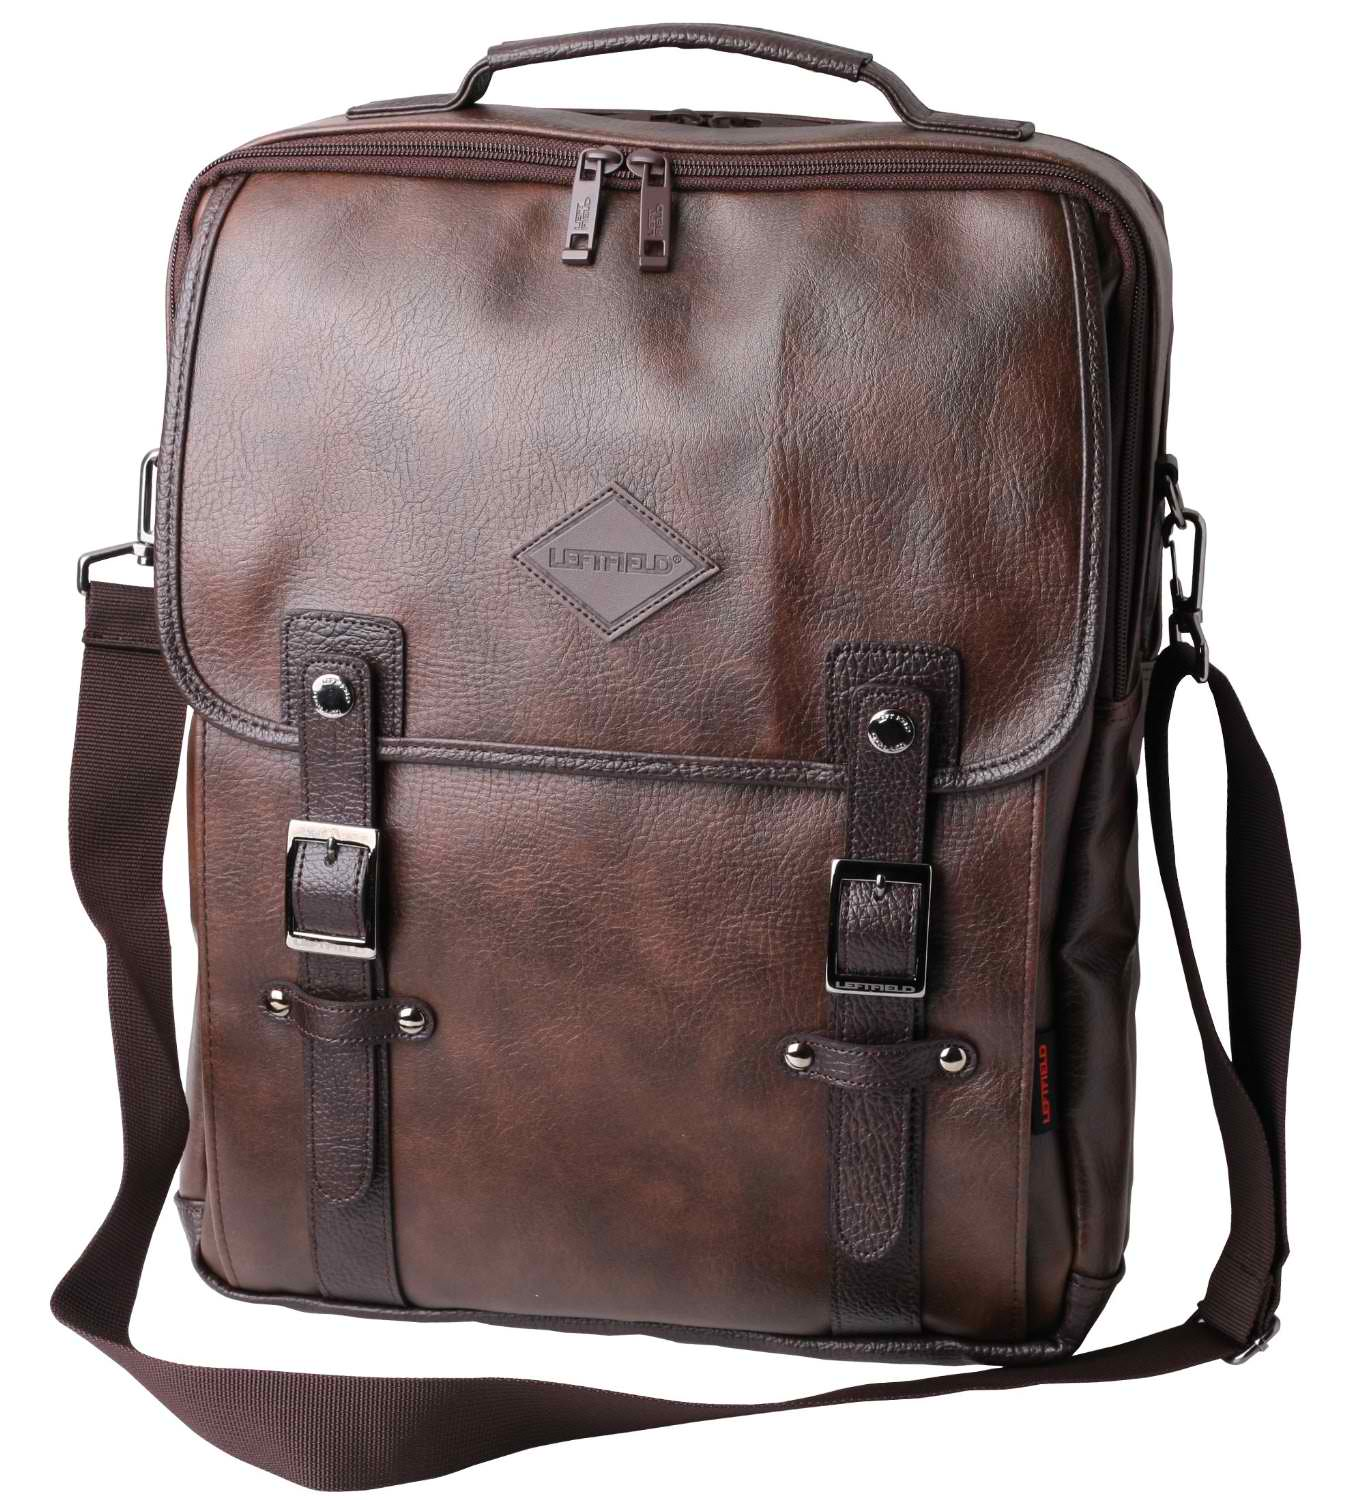 Leather Messenger Backpack bSAVw6x2